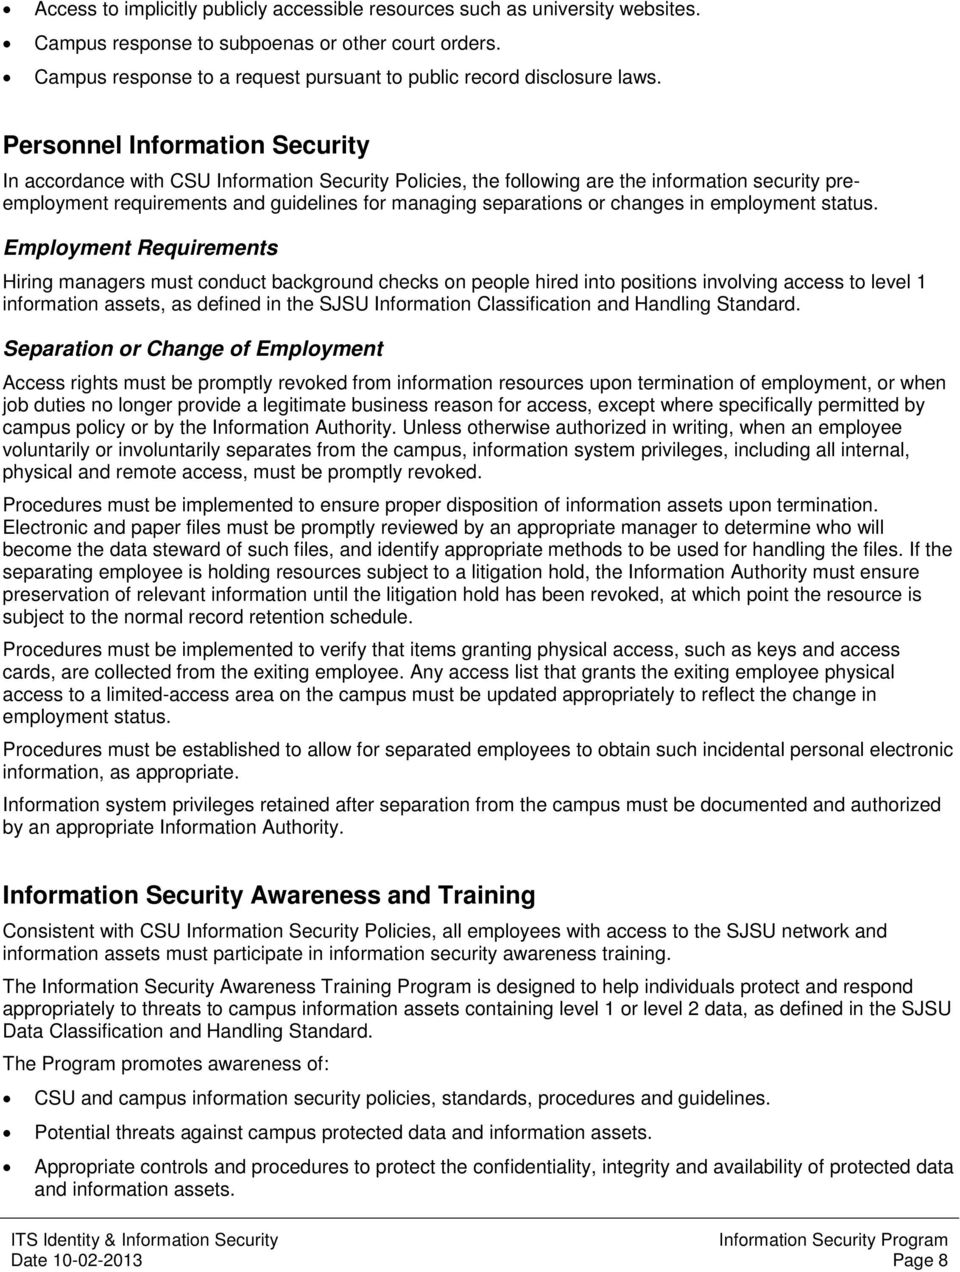 Personnel Information Security In accordance with CSU Information Security Policies, the following are the information security preemployment requirements and guidelines for managing separations or